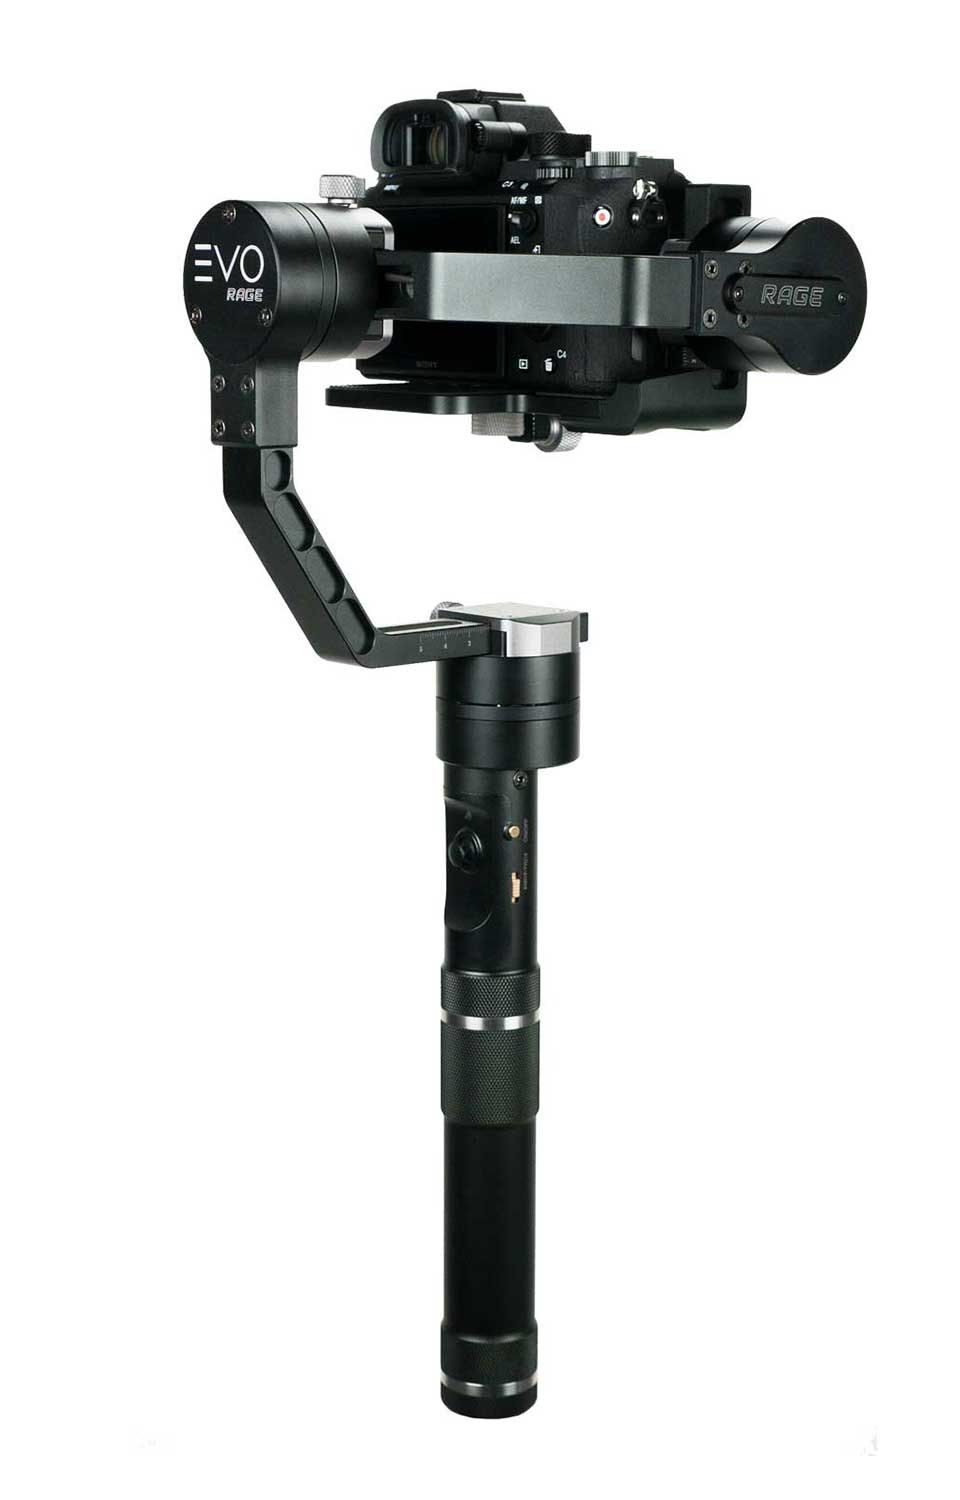 EVO Rage 3-Axis Handheld DSLR gimbal for mirrorless cameras Backside Controls